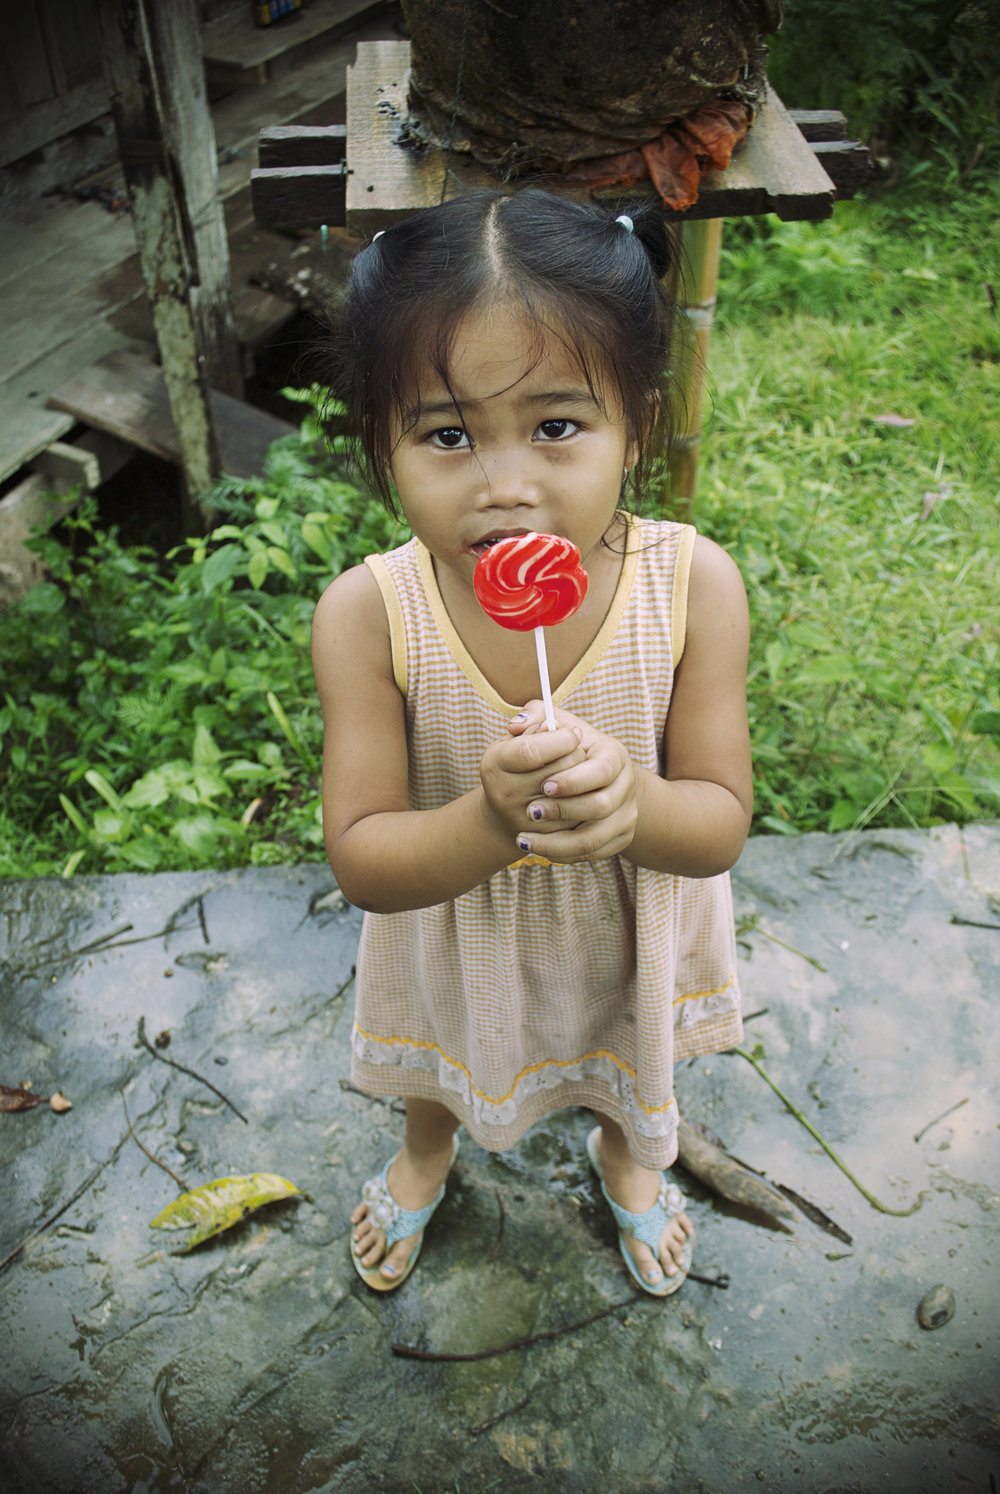 PORTRAITS | Girl with Lollipop, Ban Lad Khammoune, Laos